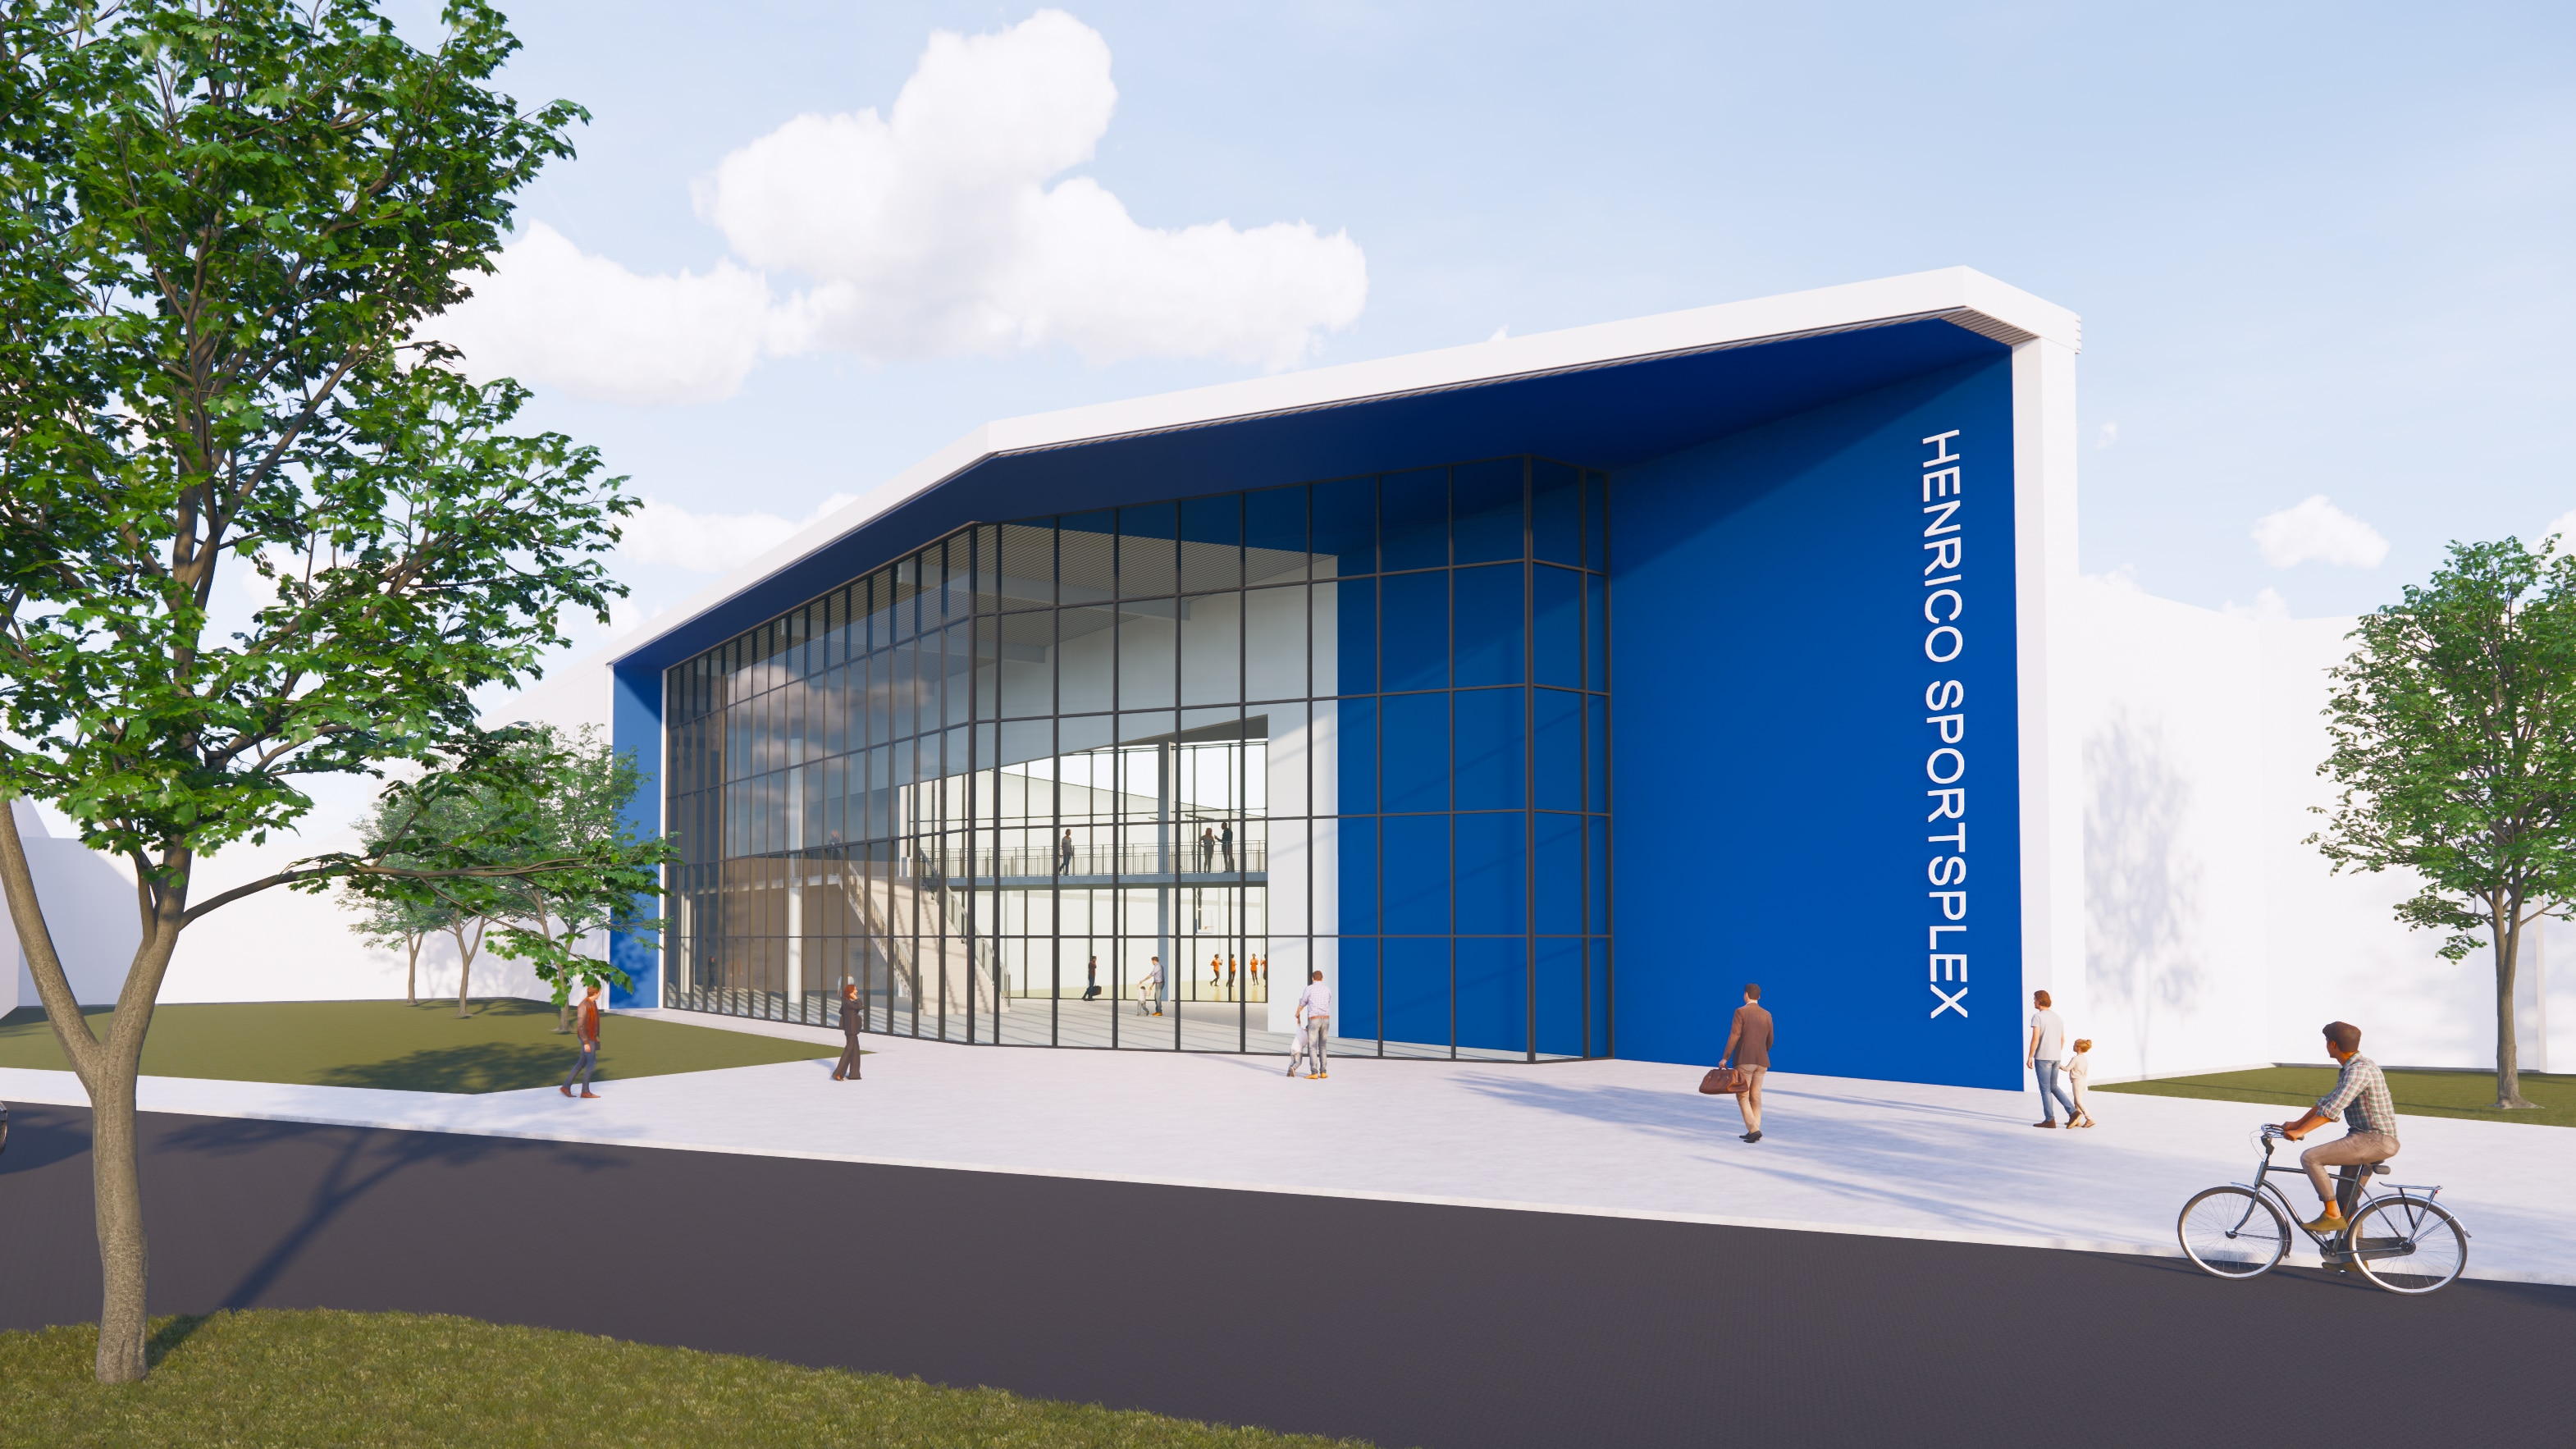 Indoor sports complex, convention center could replace Virginia Center Commons